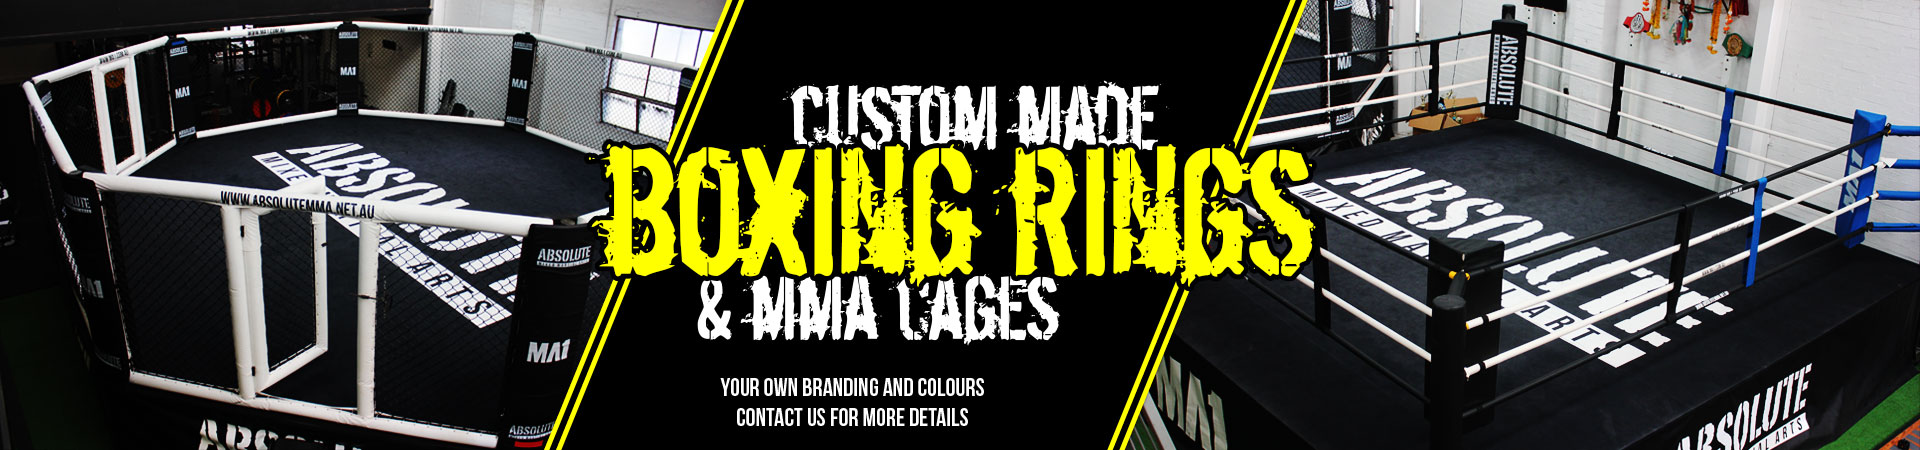 MA1 Custom Boxing Rings & MMA Cages